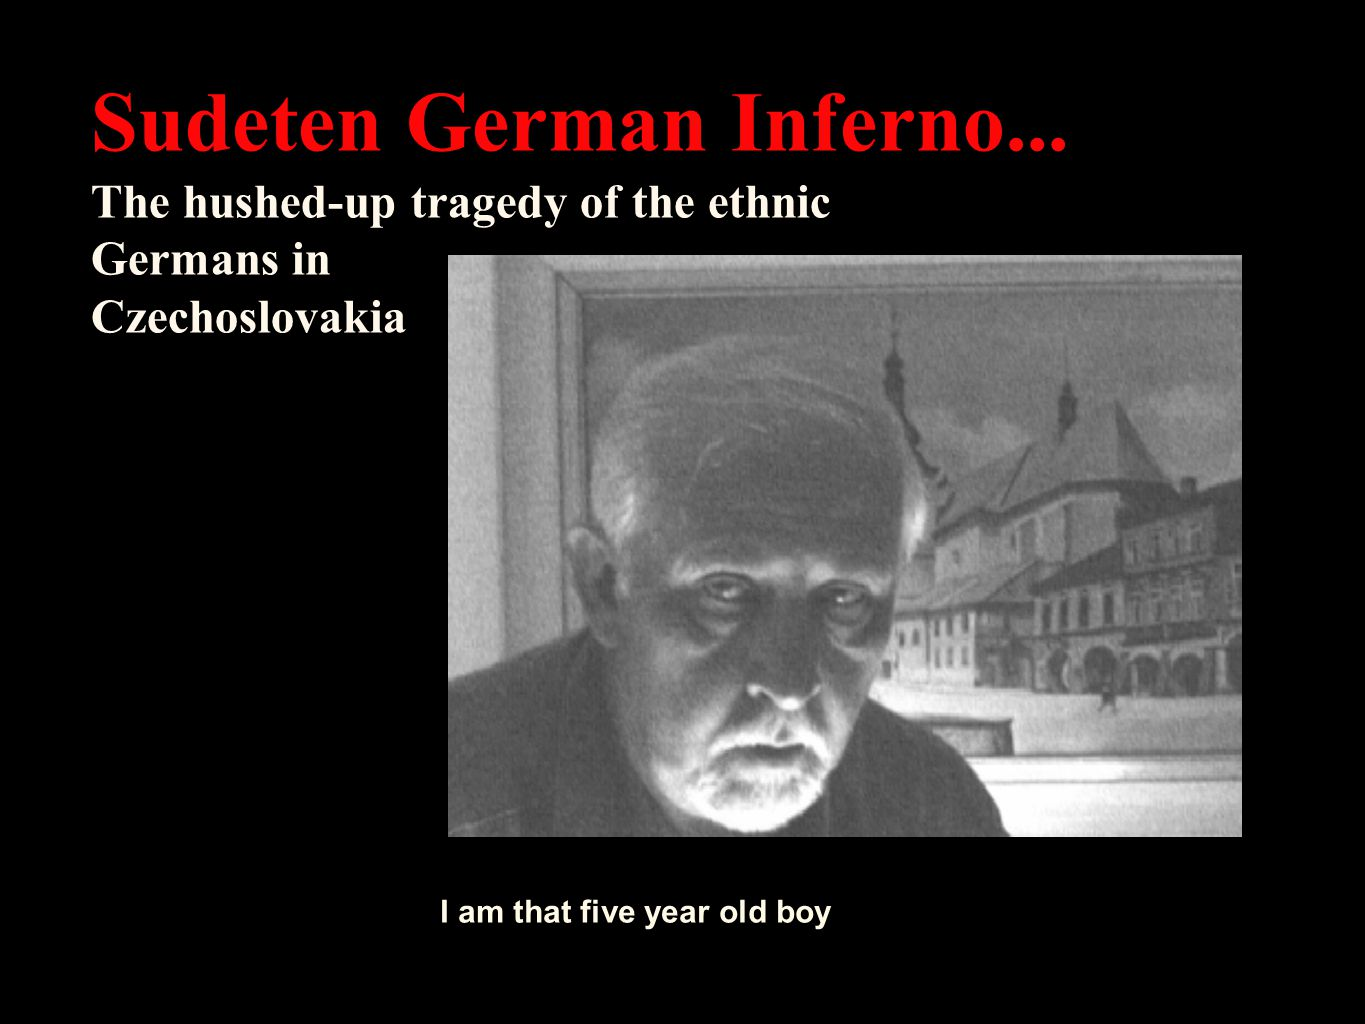 After the war ended in 1945, one of the most gruesome genocides took place that the history of mankind has ever seen: the expulsion and destruction of the Sudeten Germans.